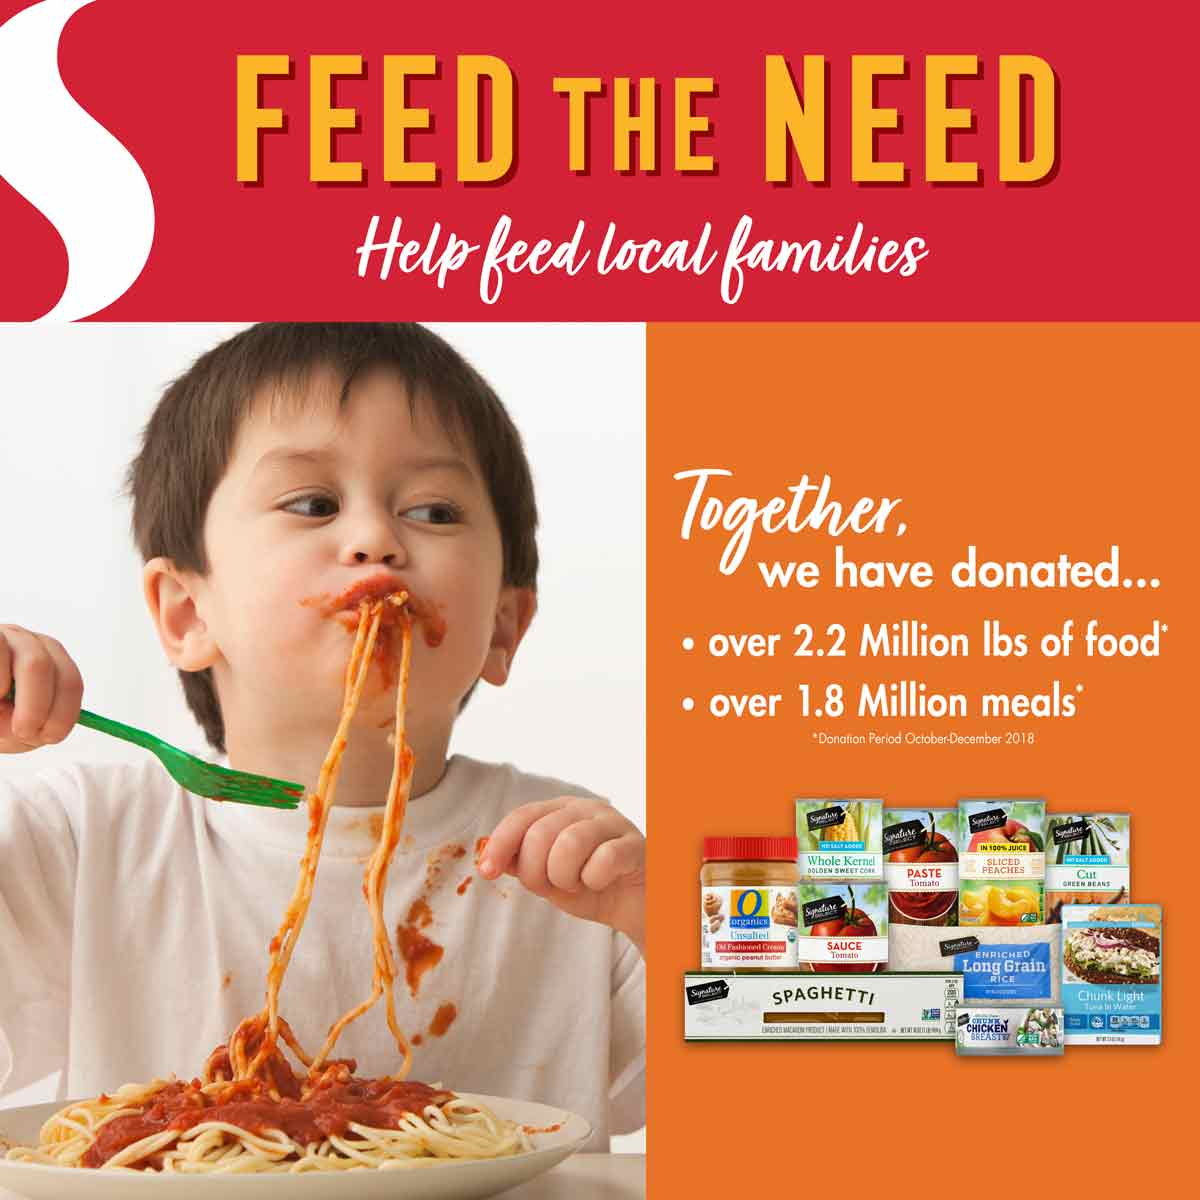 Safeway's Feed the Need Food Drive